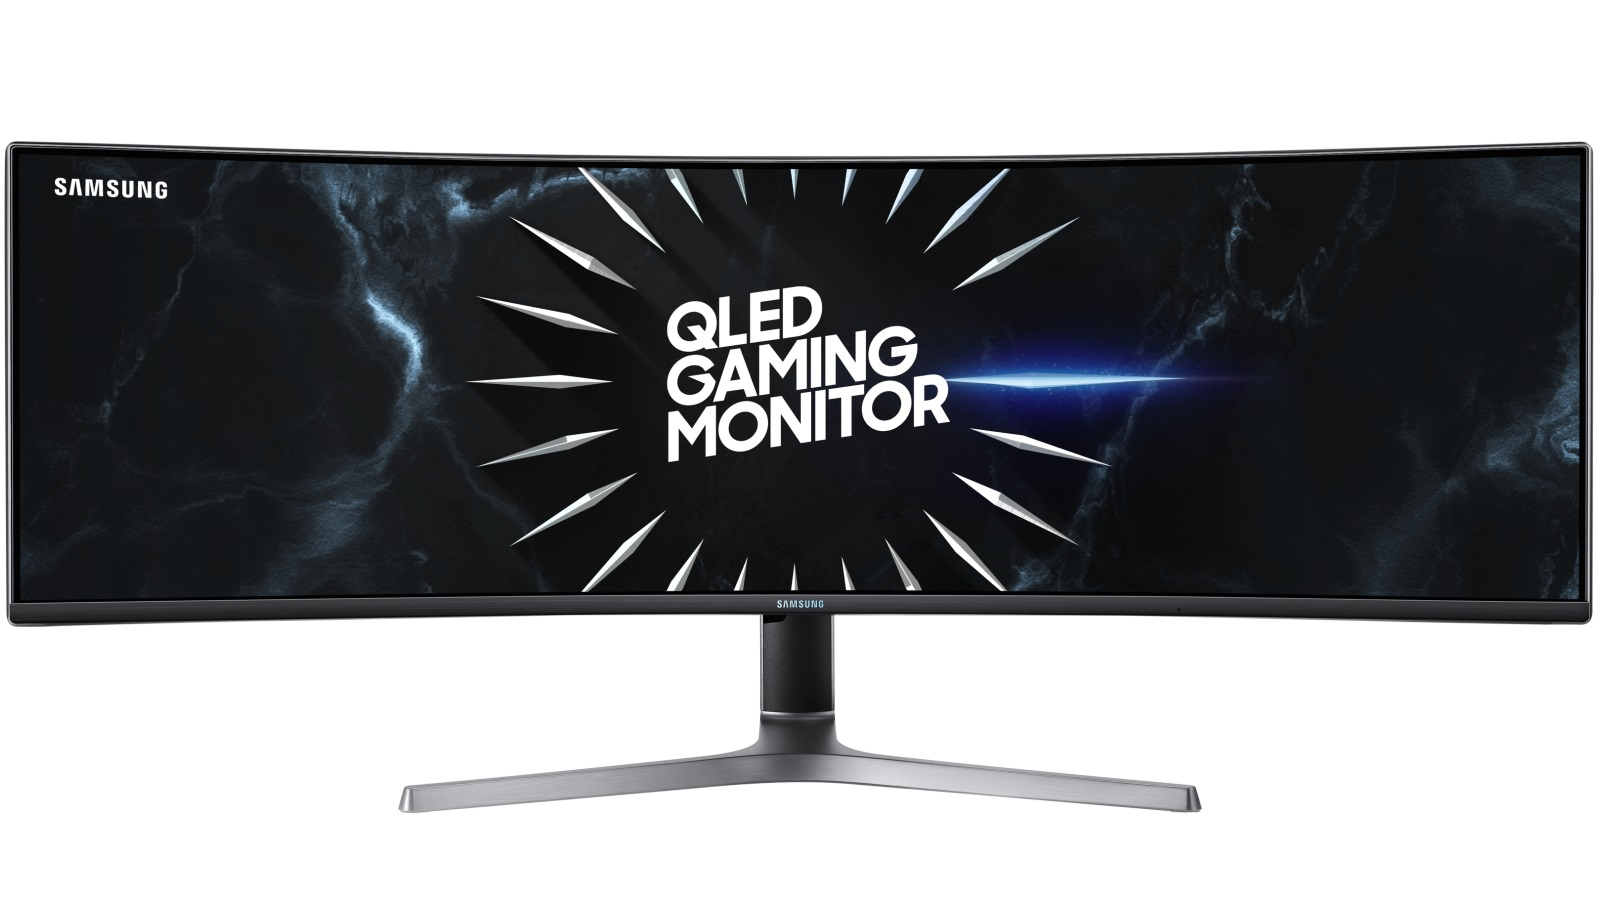 Samsung 49-inch QLED Gaming Monitor with Dual QHD Resolution